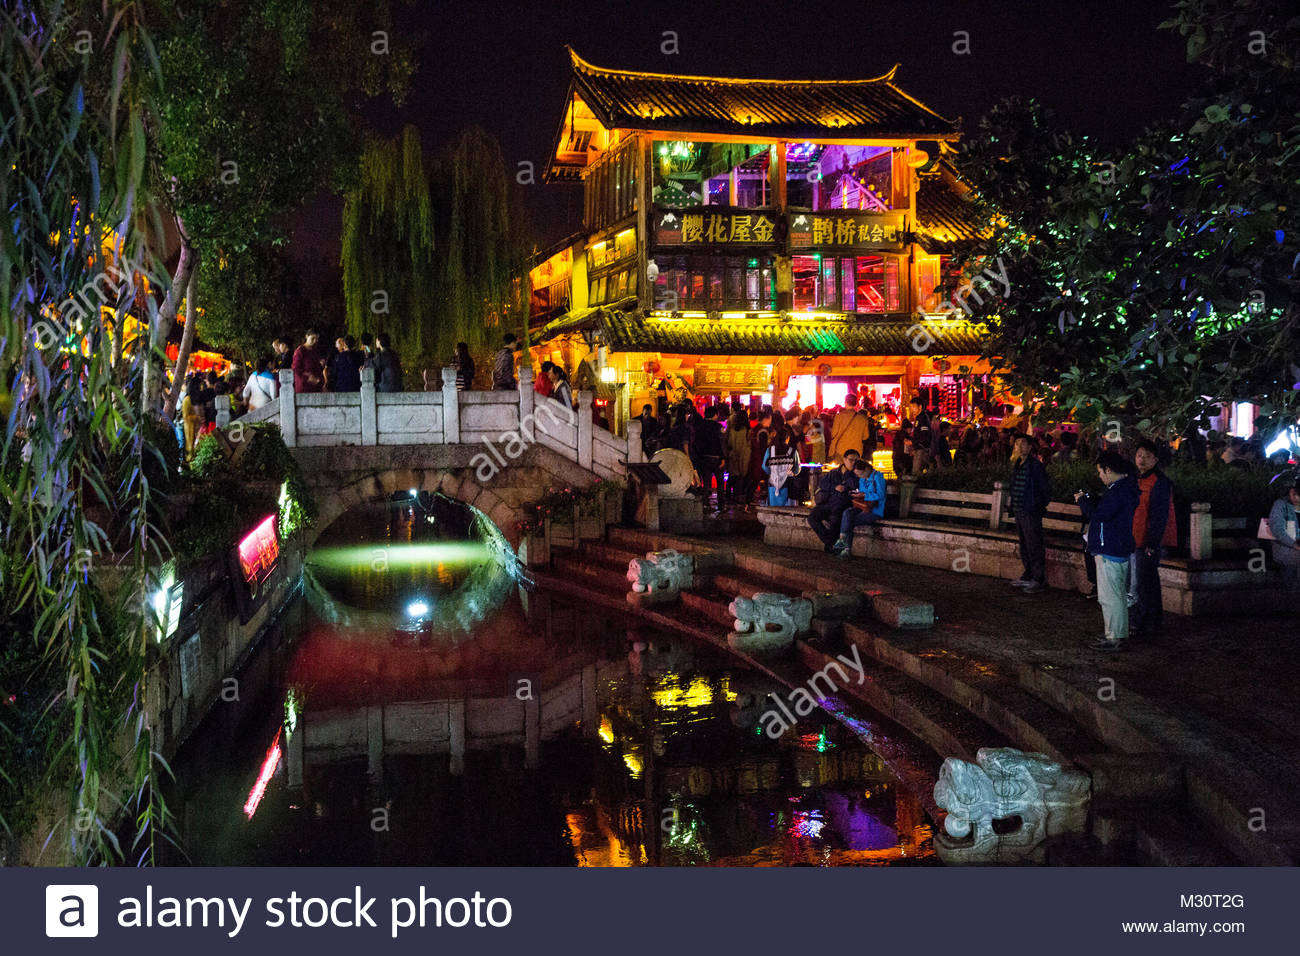 Street Photography of Lijiang Old Town, Yunnan Province, China - Stock Image